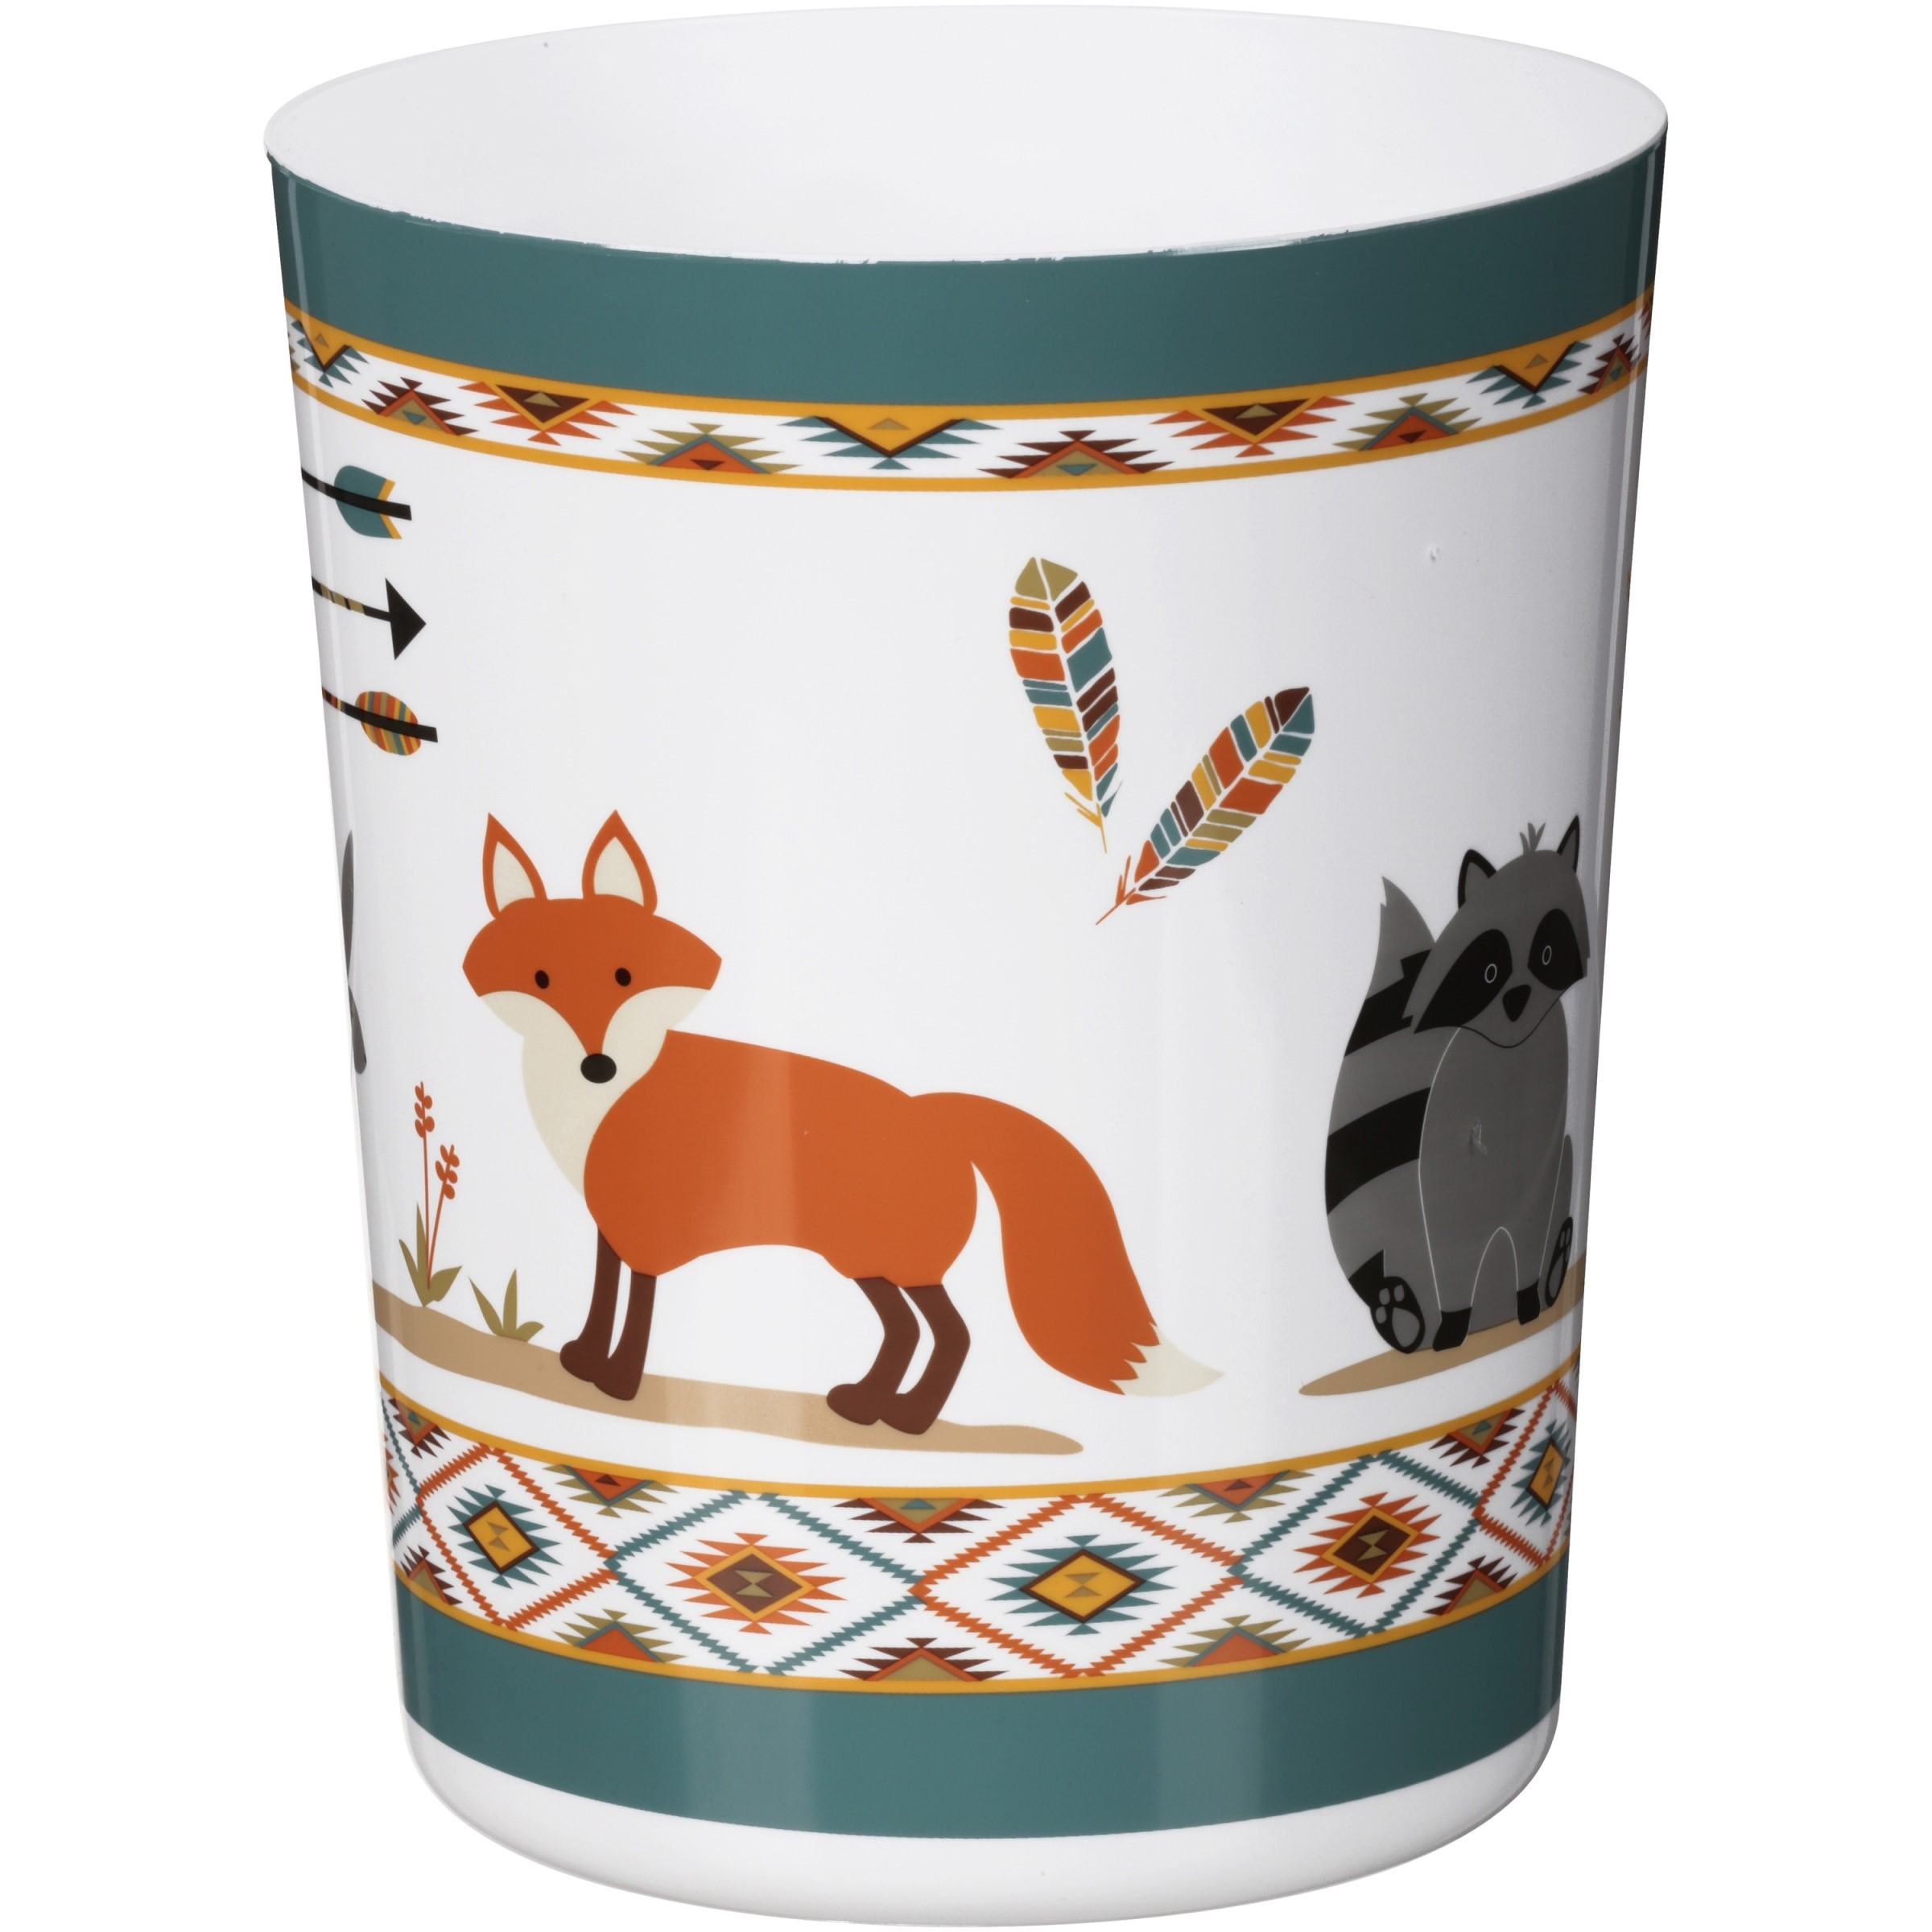 Mainstays™ Kids Woodland Creatures Waste Basket